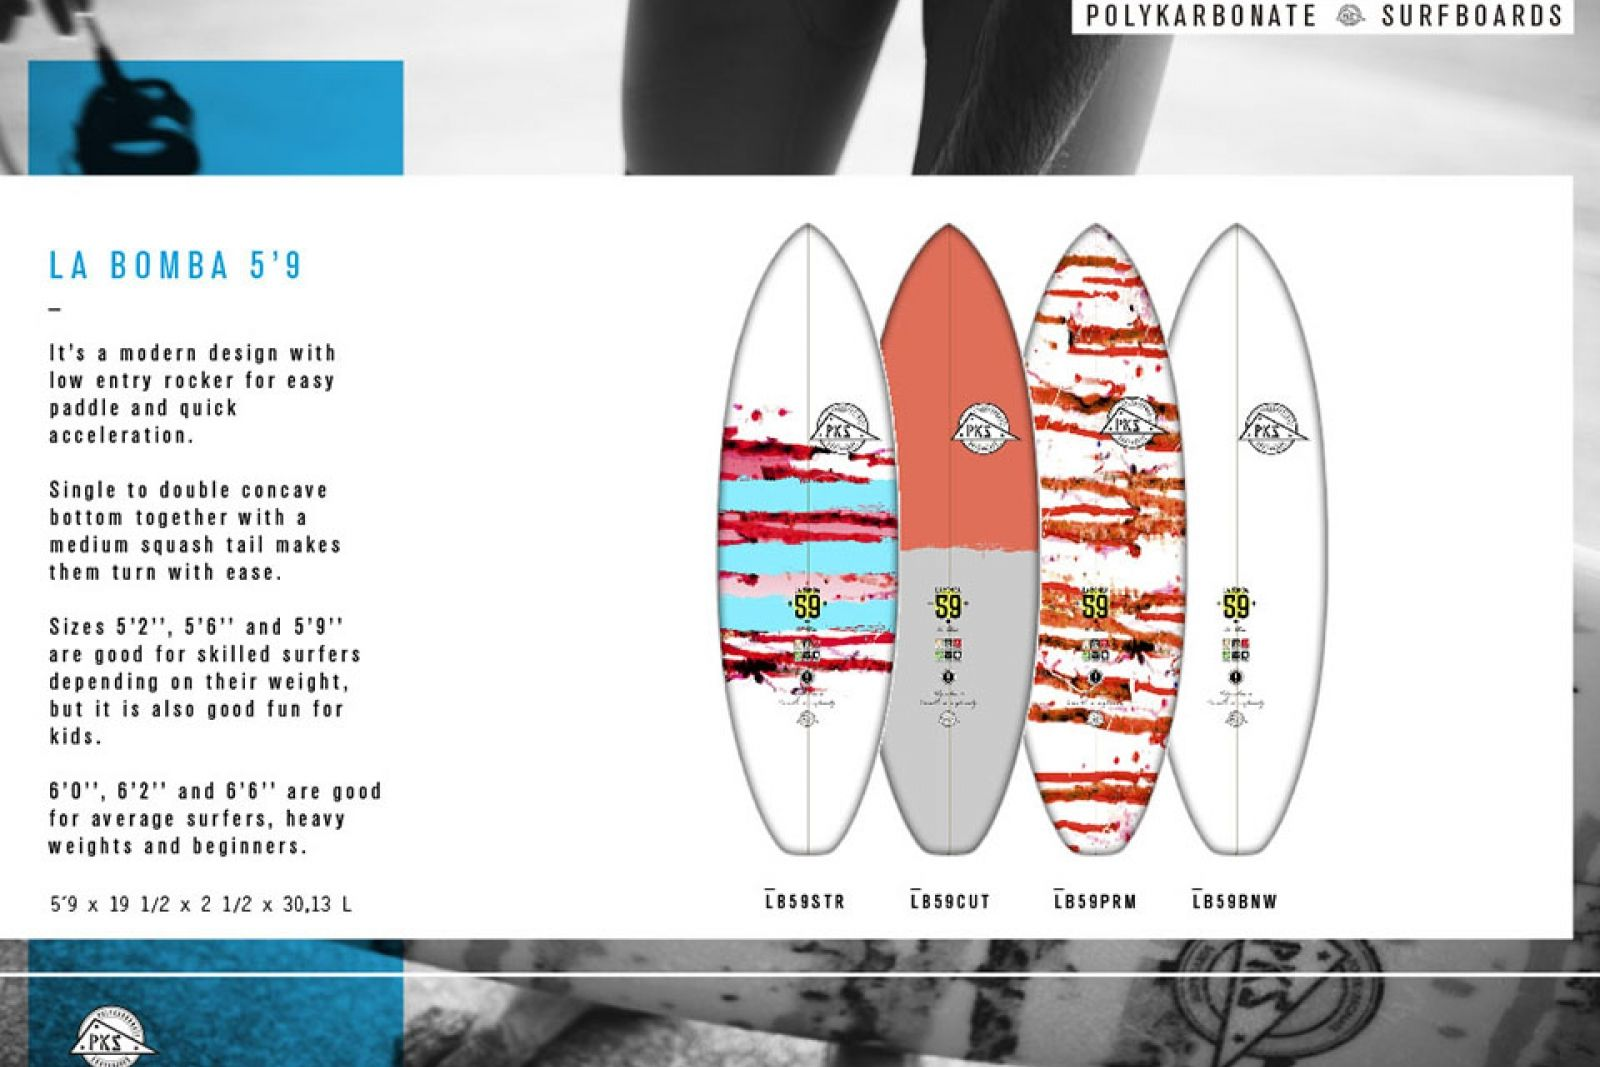 PKS Pukas Surfboards